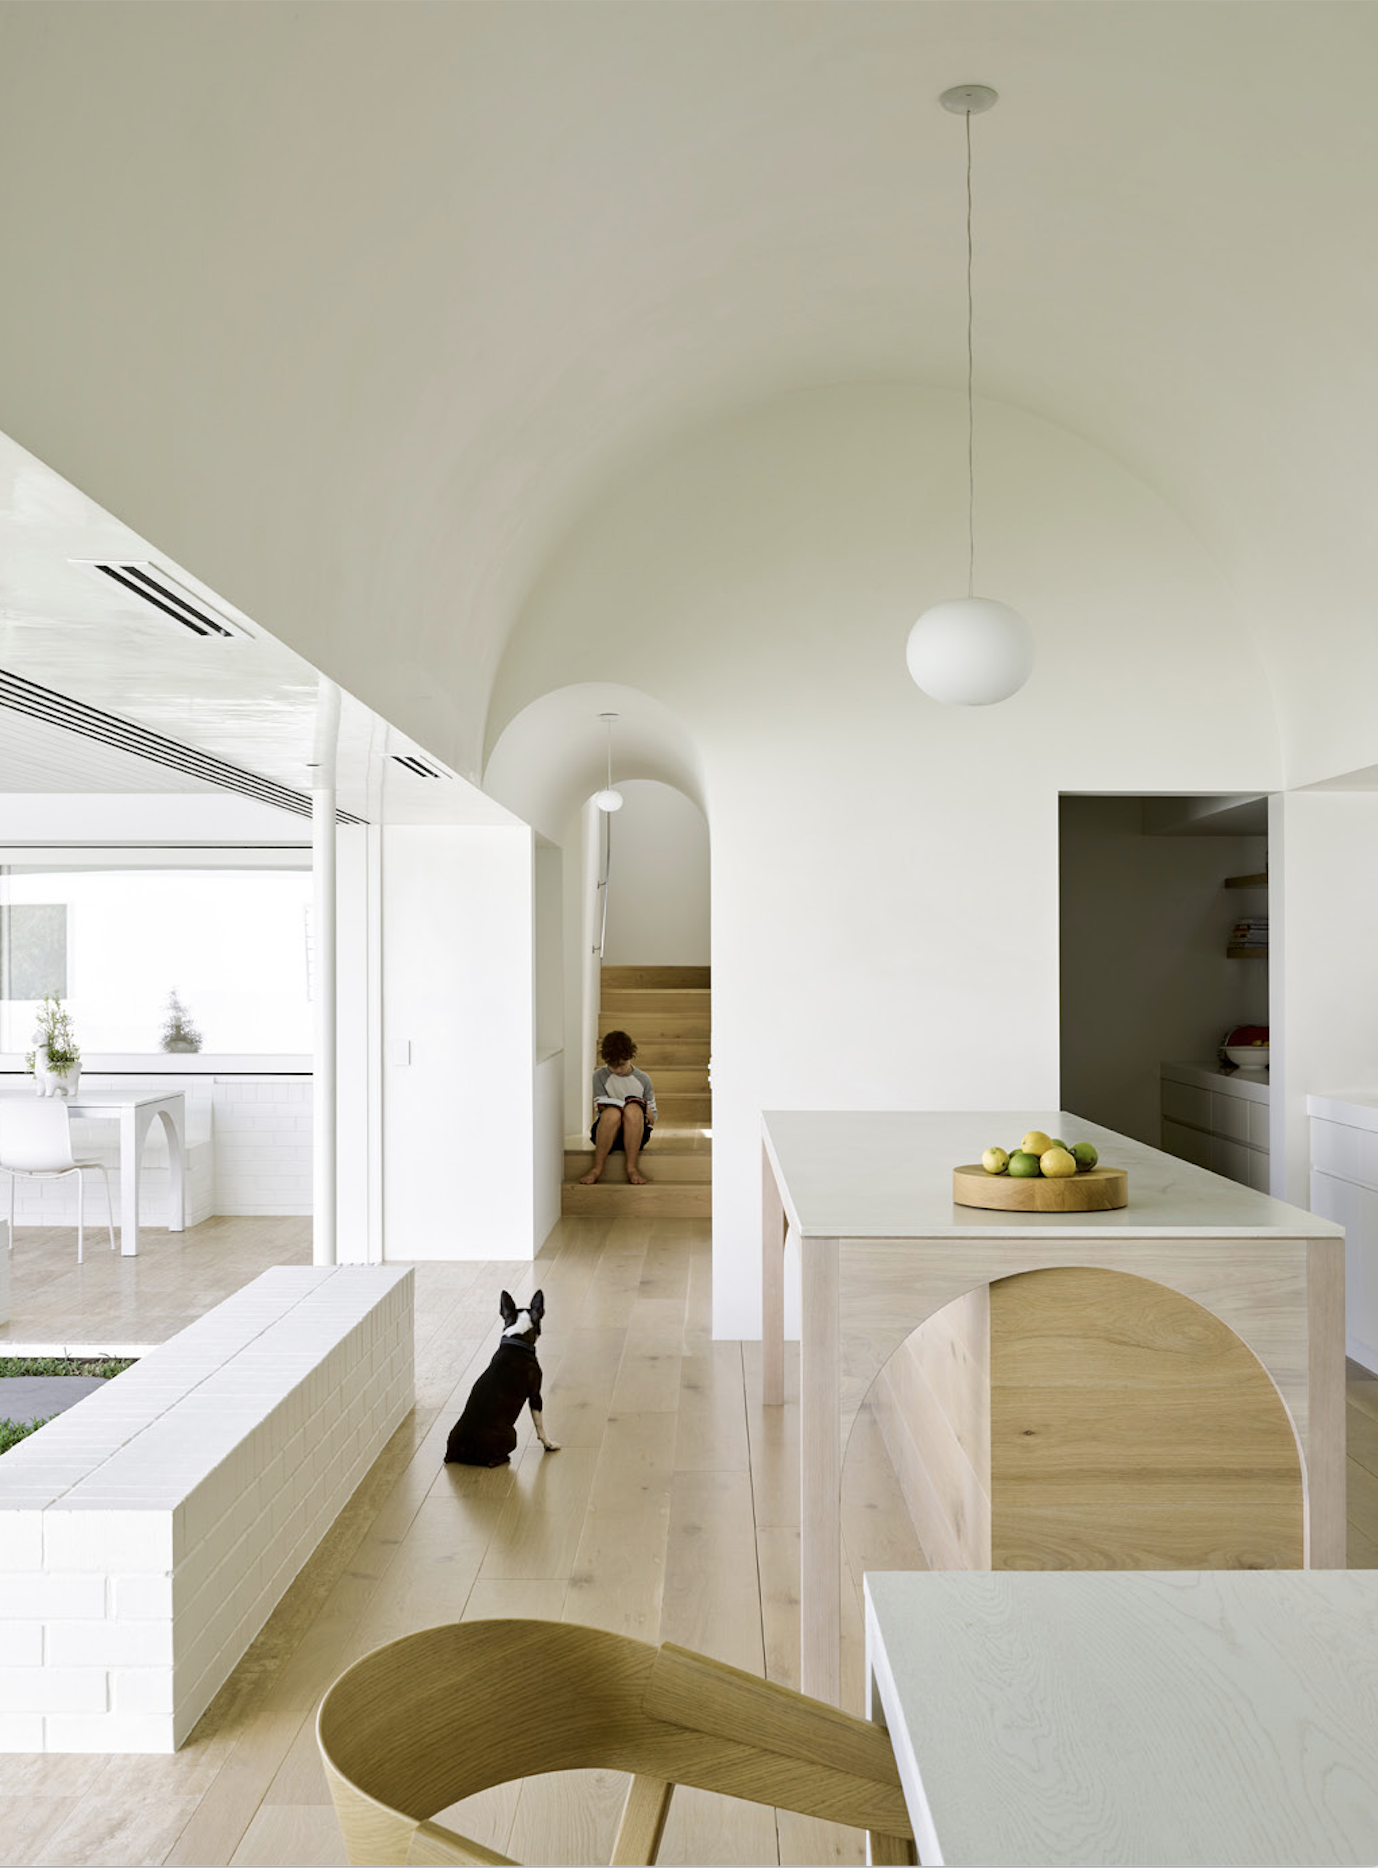 Arched doorway, arched ceiling, arched island, oh my! This space from Hogg and Lamb really embraces the arched trend in several places...there's even an arch detail over at the dining room table.  #arch #designtrend #interiors #organicmodern #kitchen #whitekitchen #minimalkitchen #minimalinterior